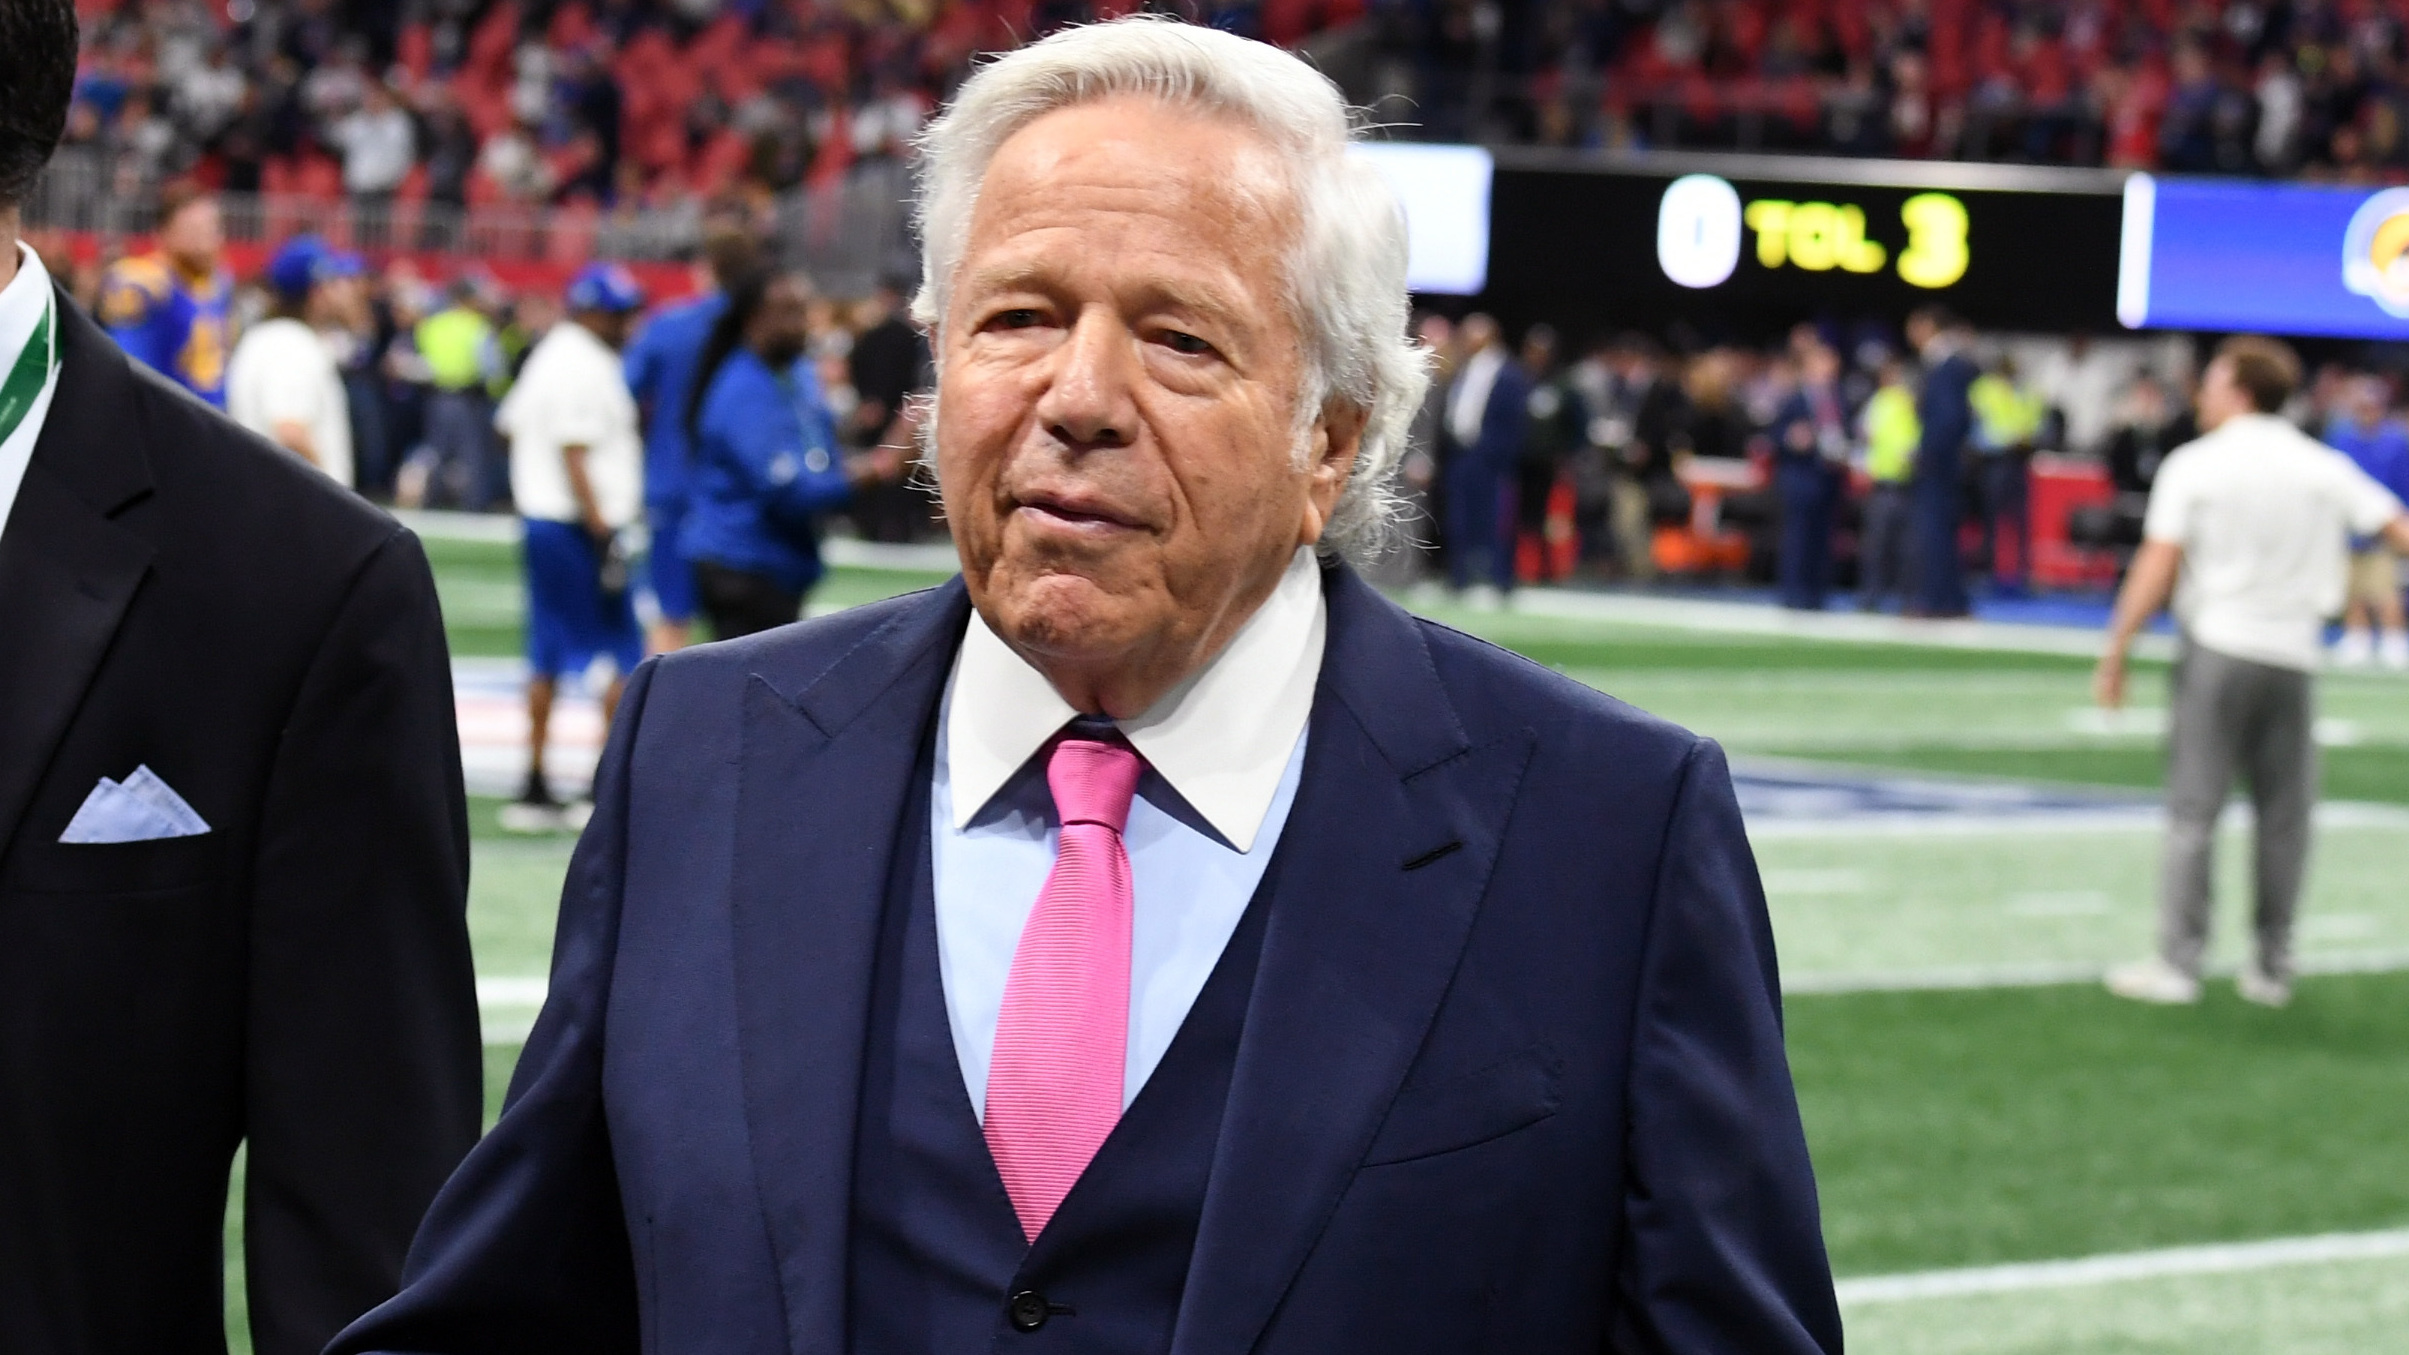 Robert Kraft Is Formally Charged With Solicitation Over Visits To